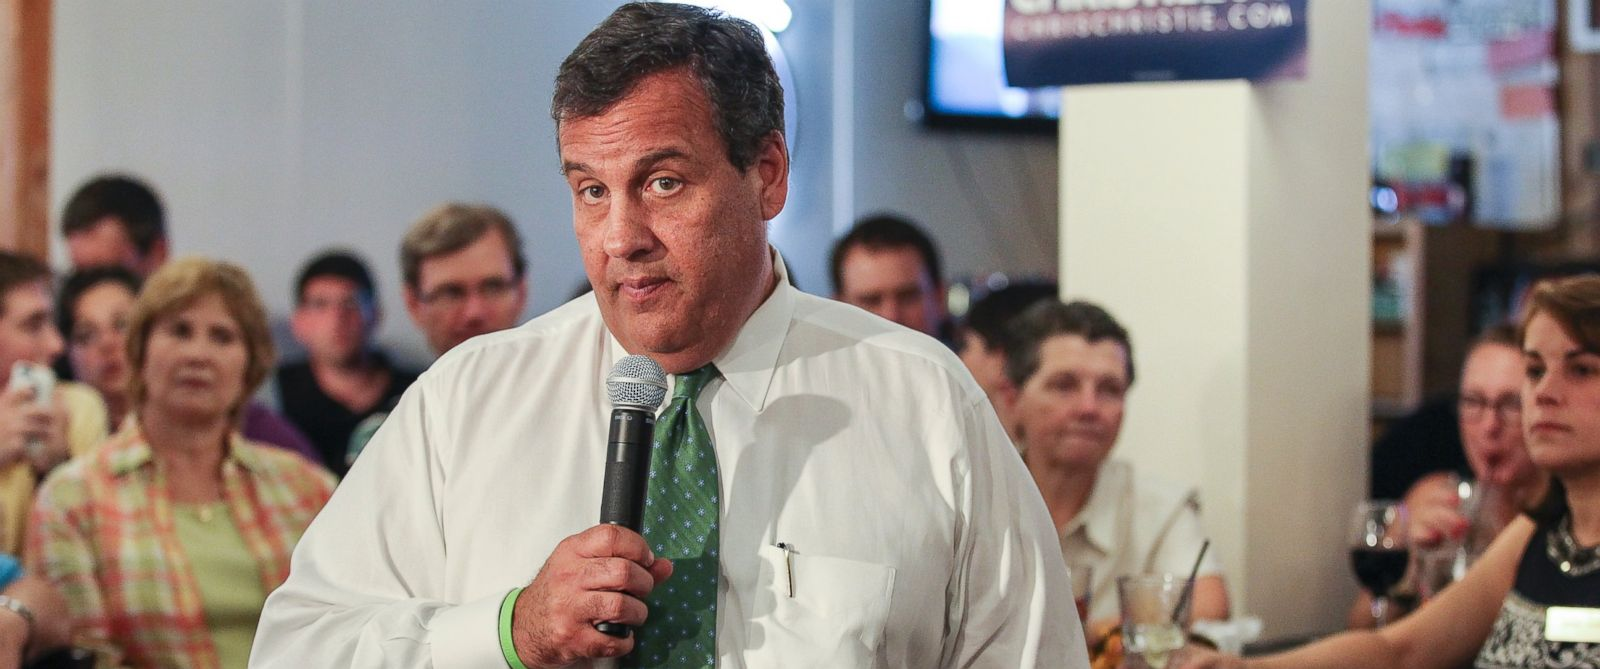 PHOTO: Republican presidential candidate, New Jersey Gov. Chris Christie, speaks at a town hall meeting at Saydes Neighborhood Bar & Grill in Salem, N.H., on Aug. 24, 2015.